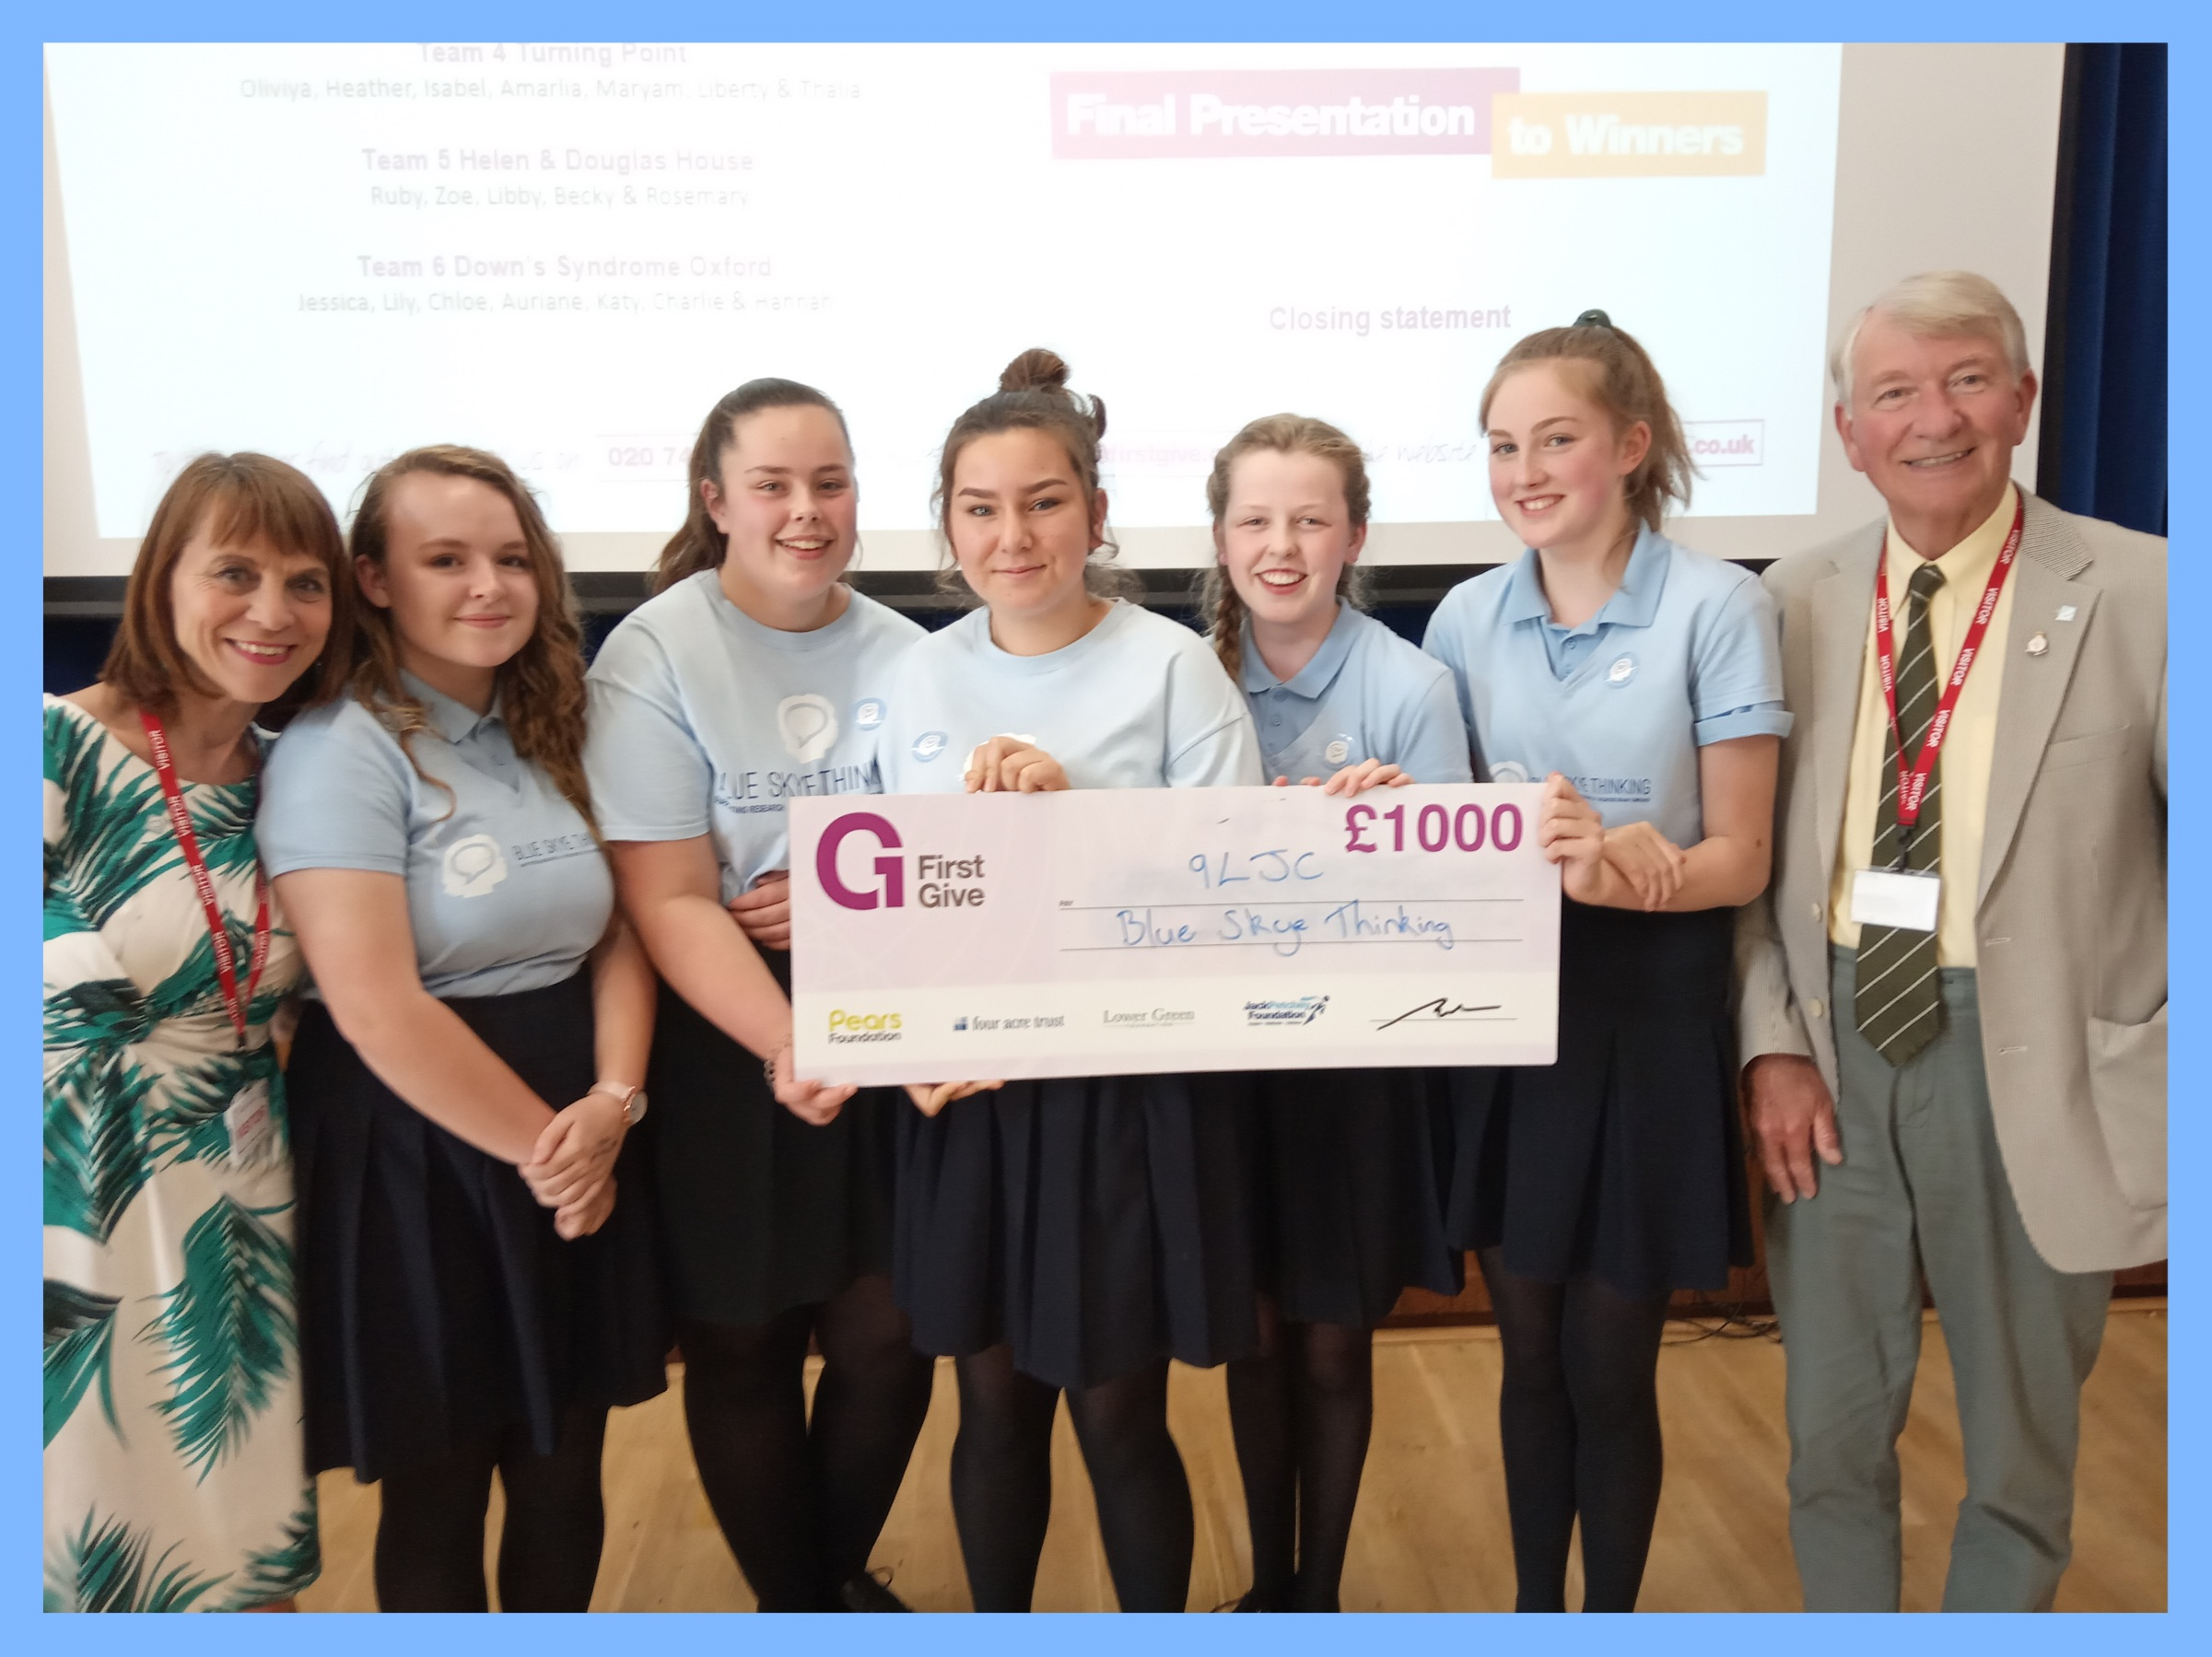 Amelie, Kate, Louise, Lily, Jenifer, Chloe, Maddie & Emily from Didcot Girls' School all made the finals of  First Give . A personal development project to help build a culture of giving,  First Give  allows pupils to choose a chosen Charity, learn more about them, organise and hold a fundraising event and then present their finding at school. The winning team are awarded £1000 for their chosen charity. Among very steep competition, Amelie, Kate and Louise were successful in winning this year's competition and we are so very grateful.  Thanks also to Head of Personal Development at the school, Stuart George.